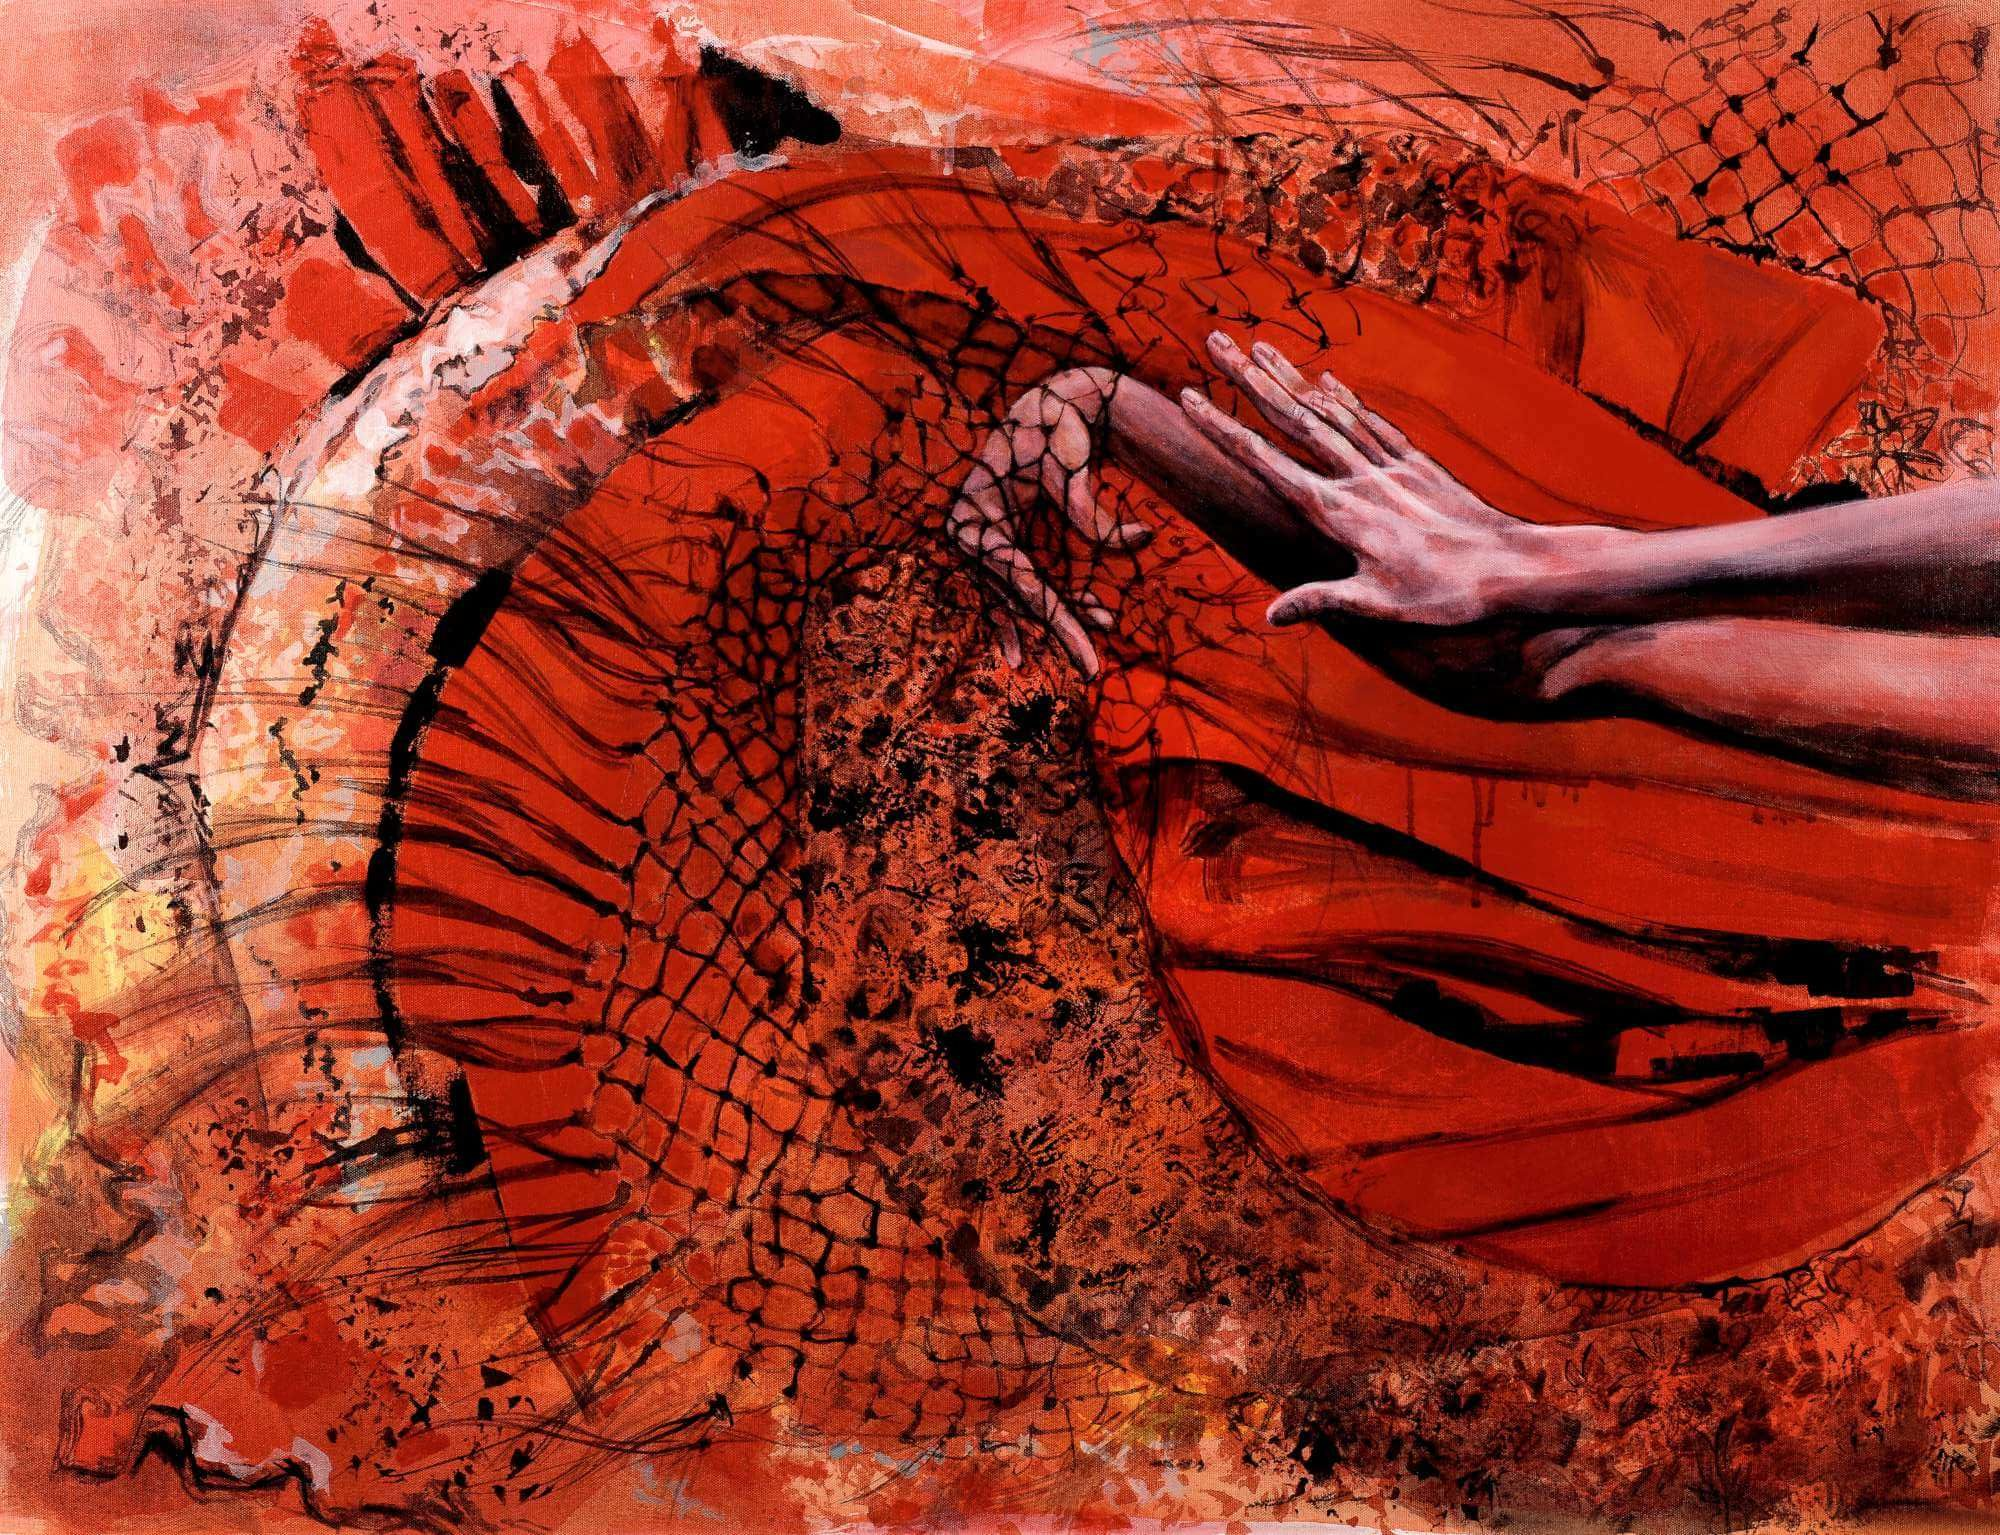 Red fabric surrounding hands entwined in a flamenco dance